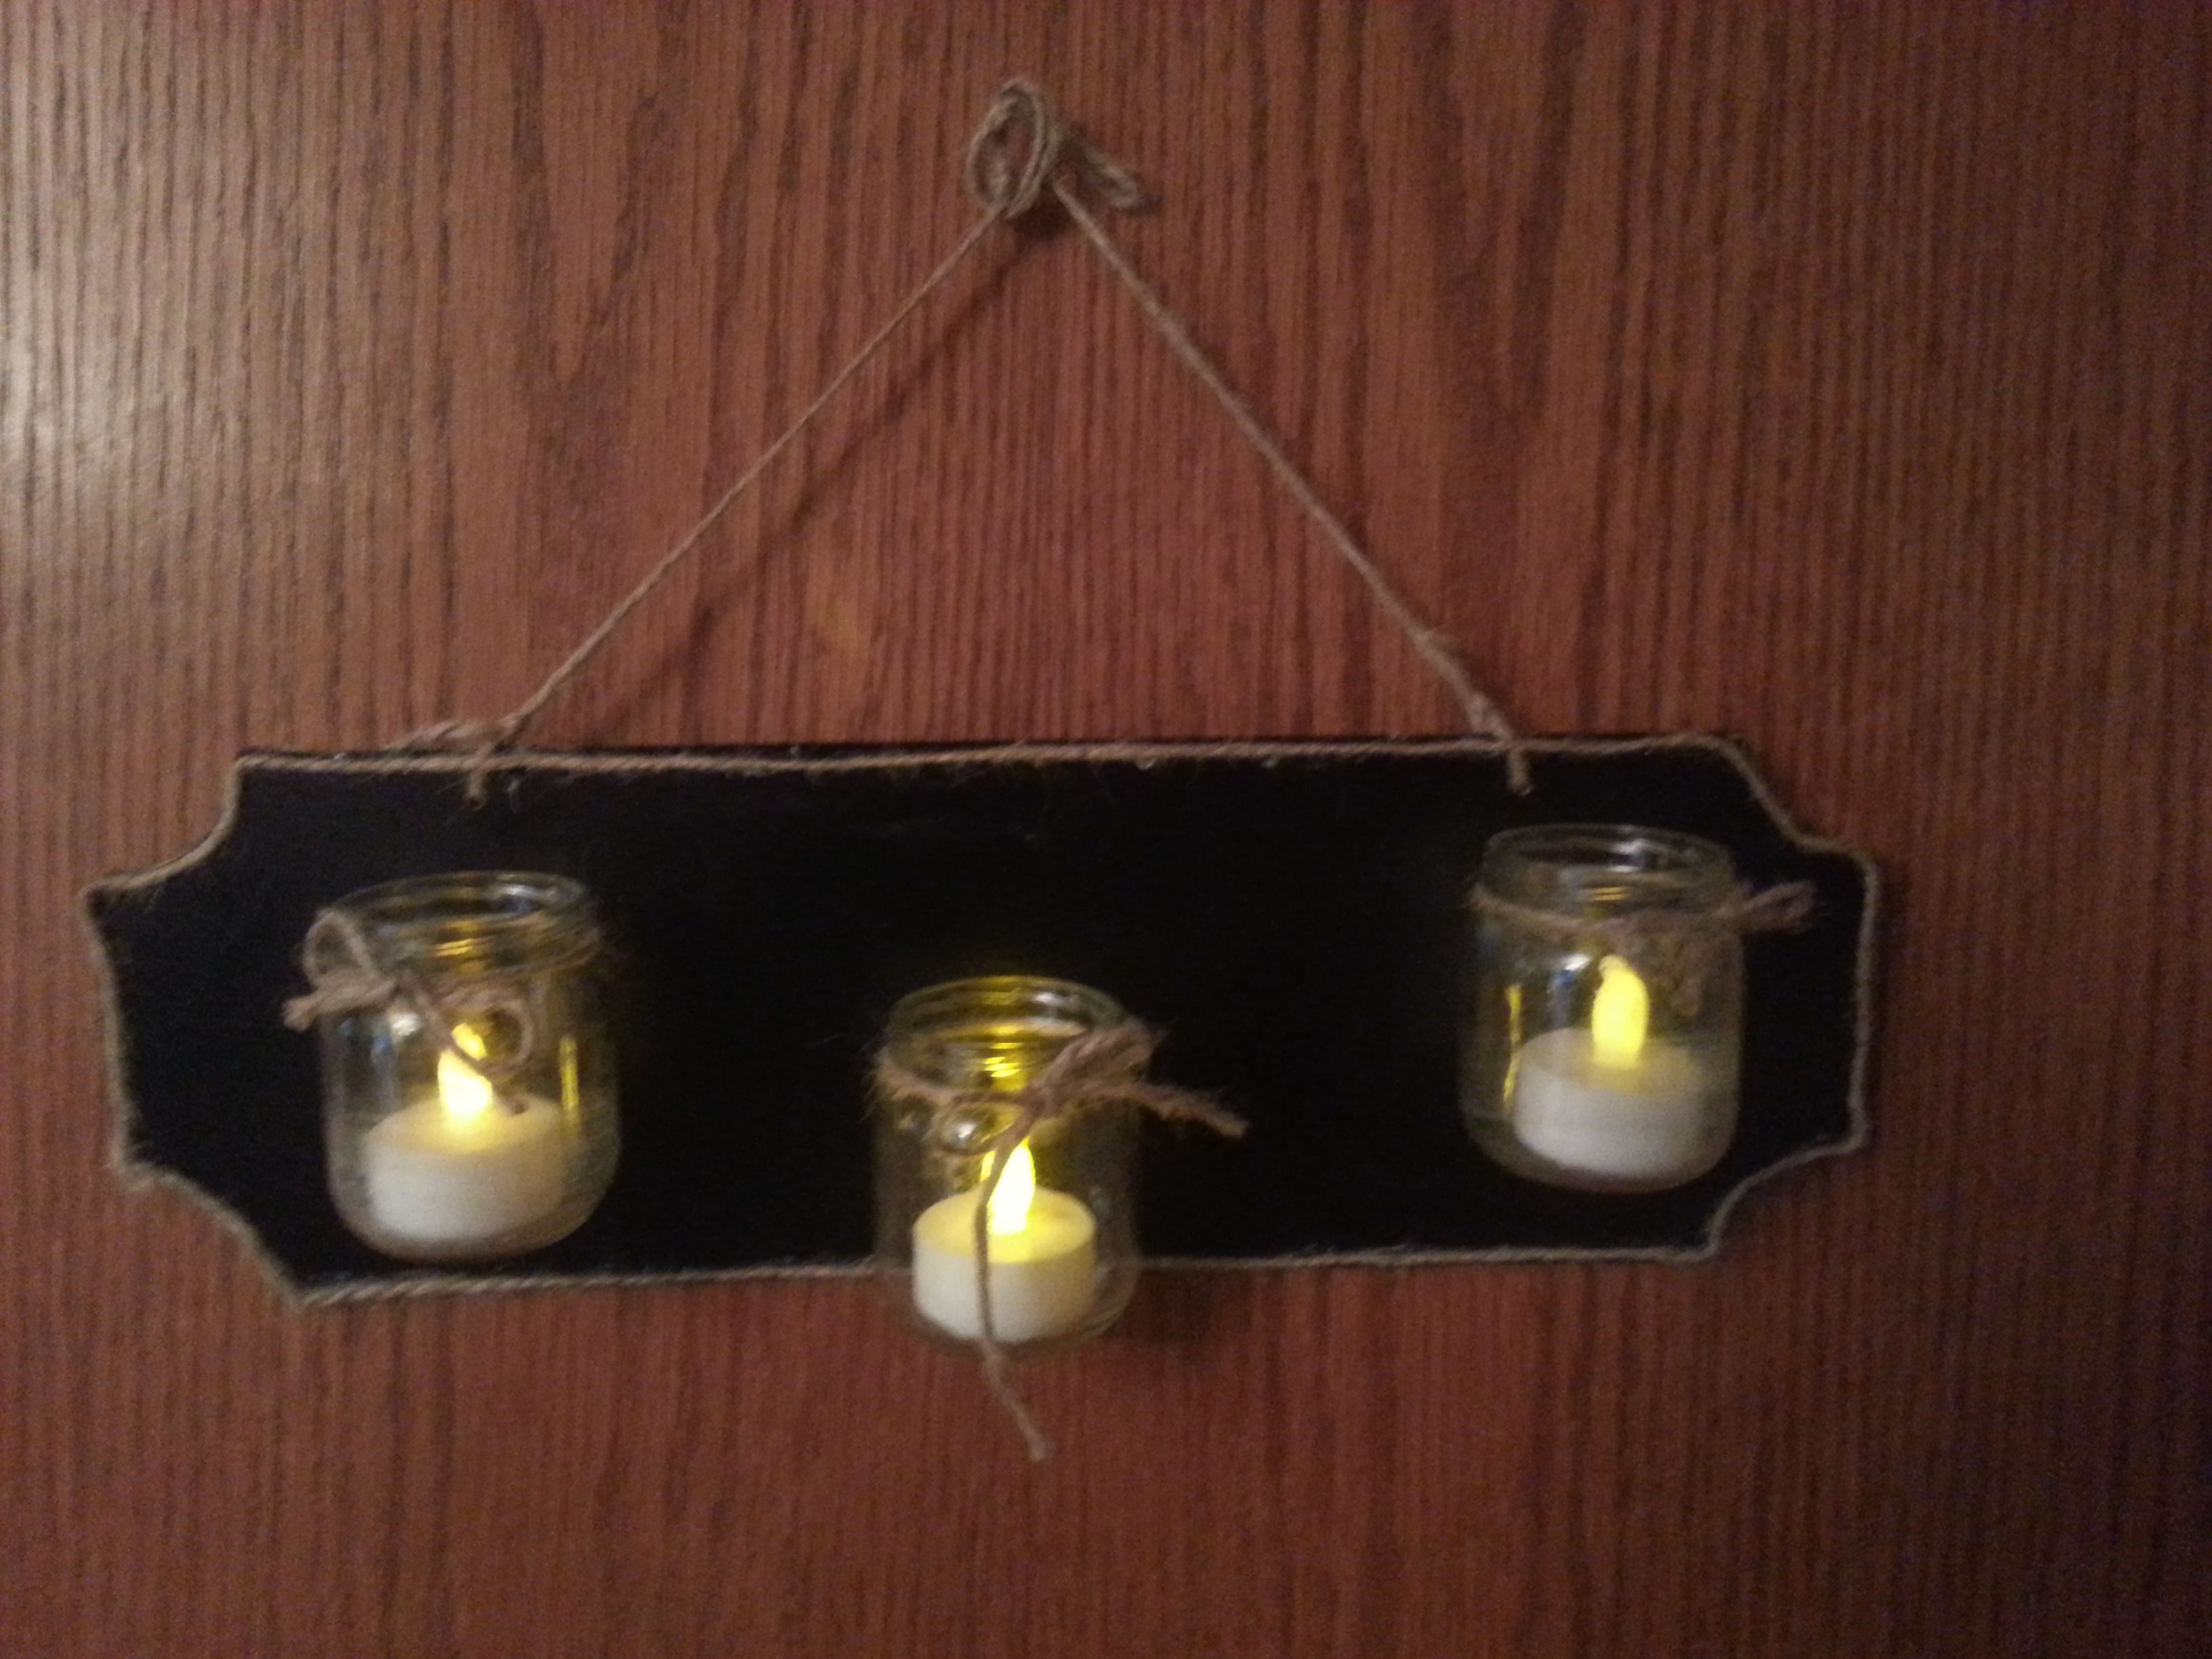 Handmade Candle Sconce Handmade Candles Candle Sconces Handmade